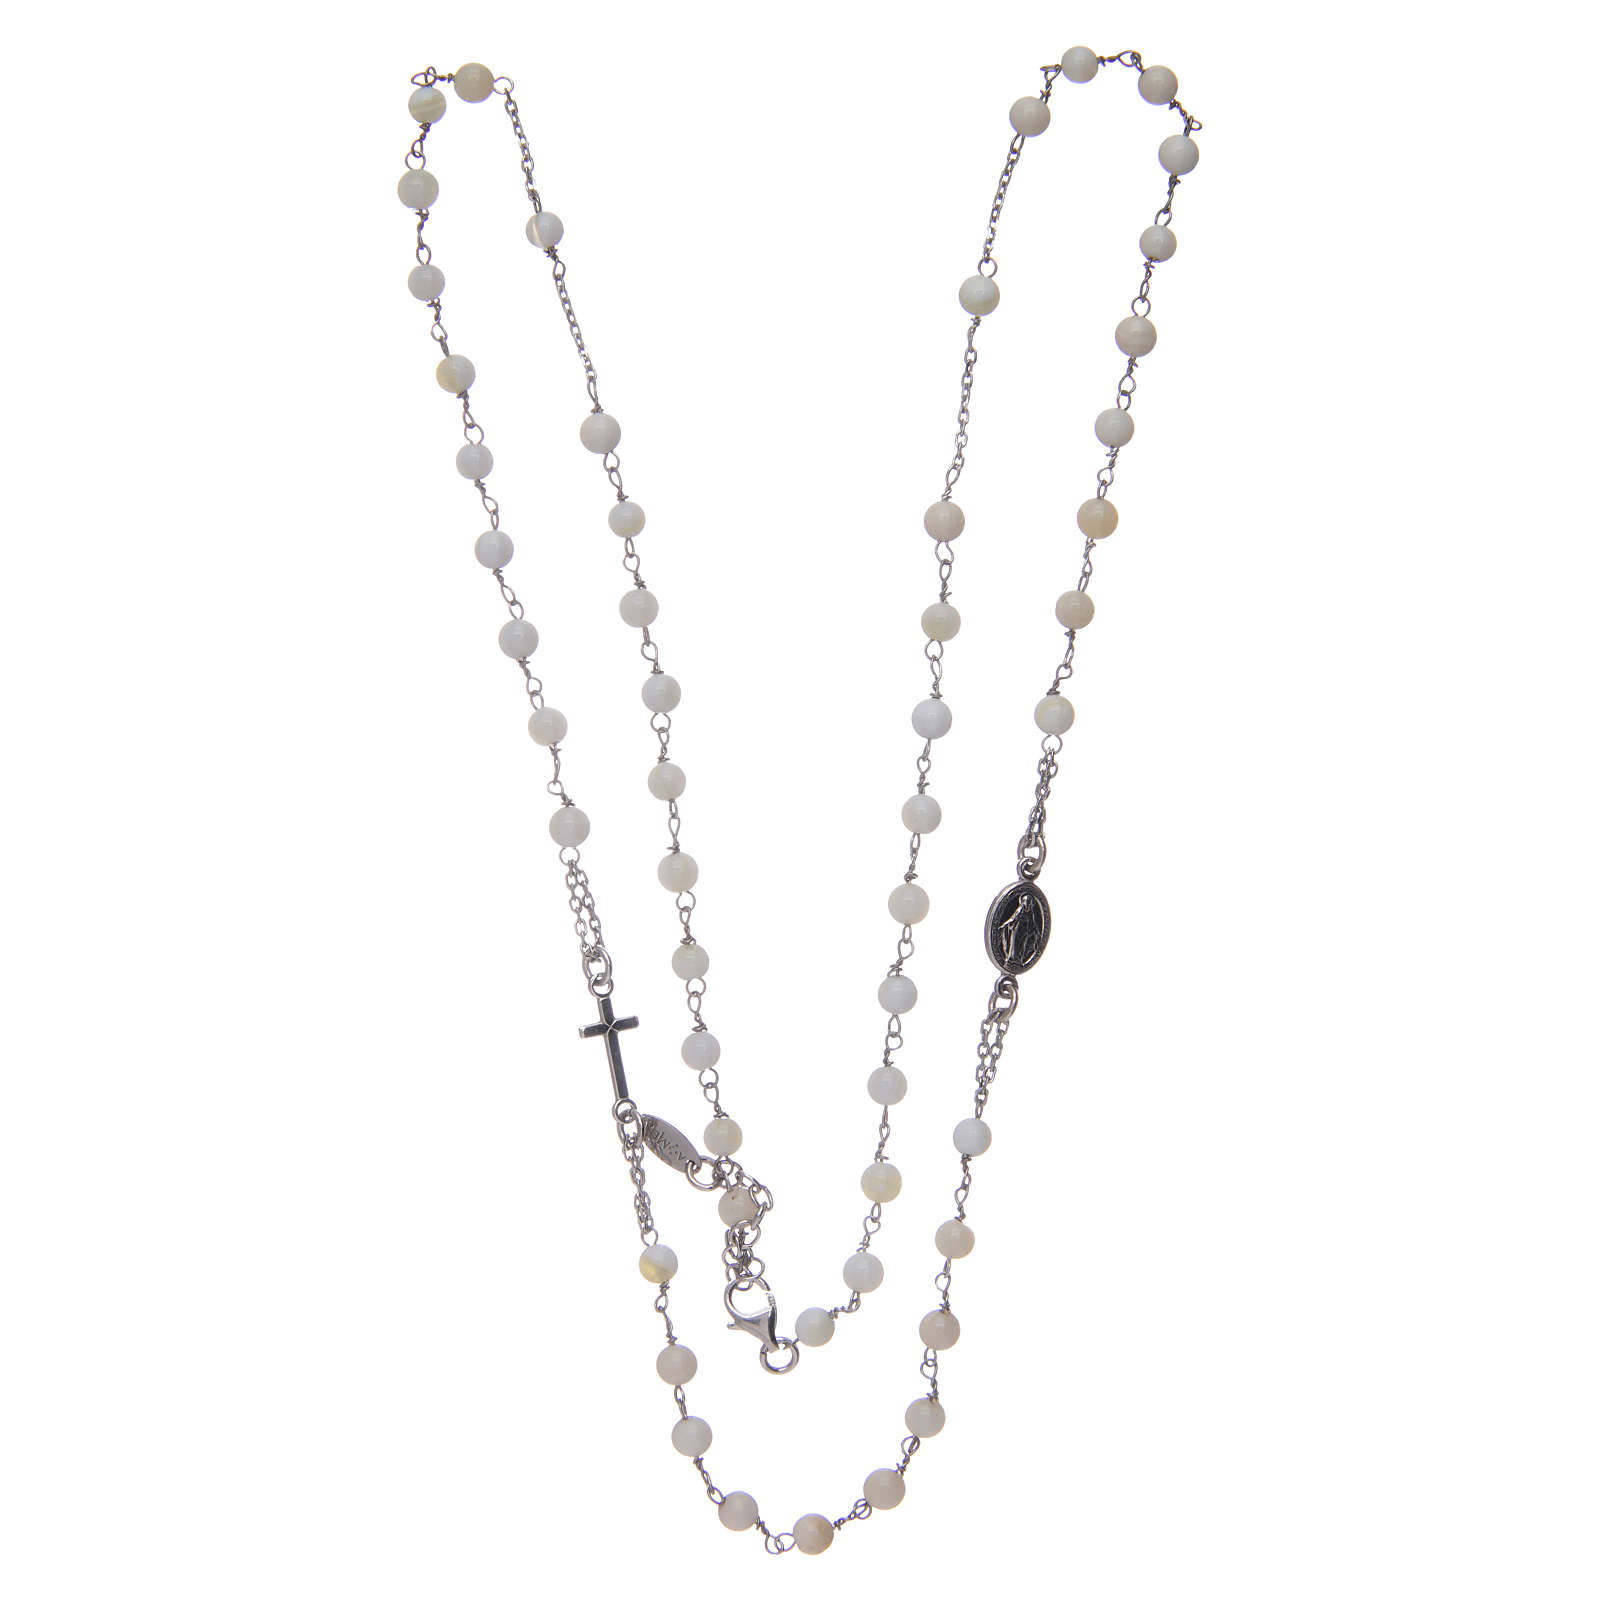 Amen rosary choker in 925 sterling silver and mother of pearl 4